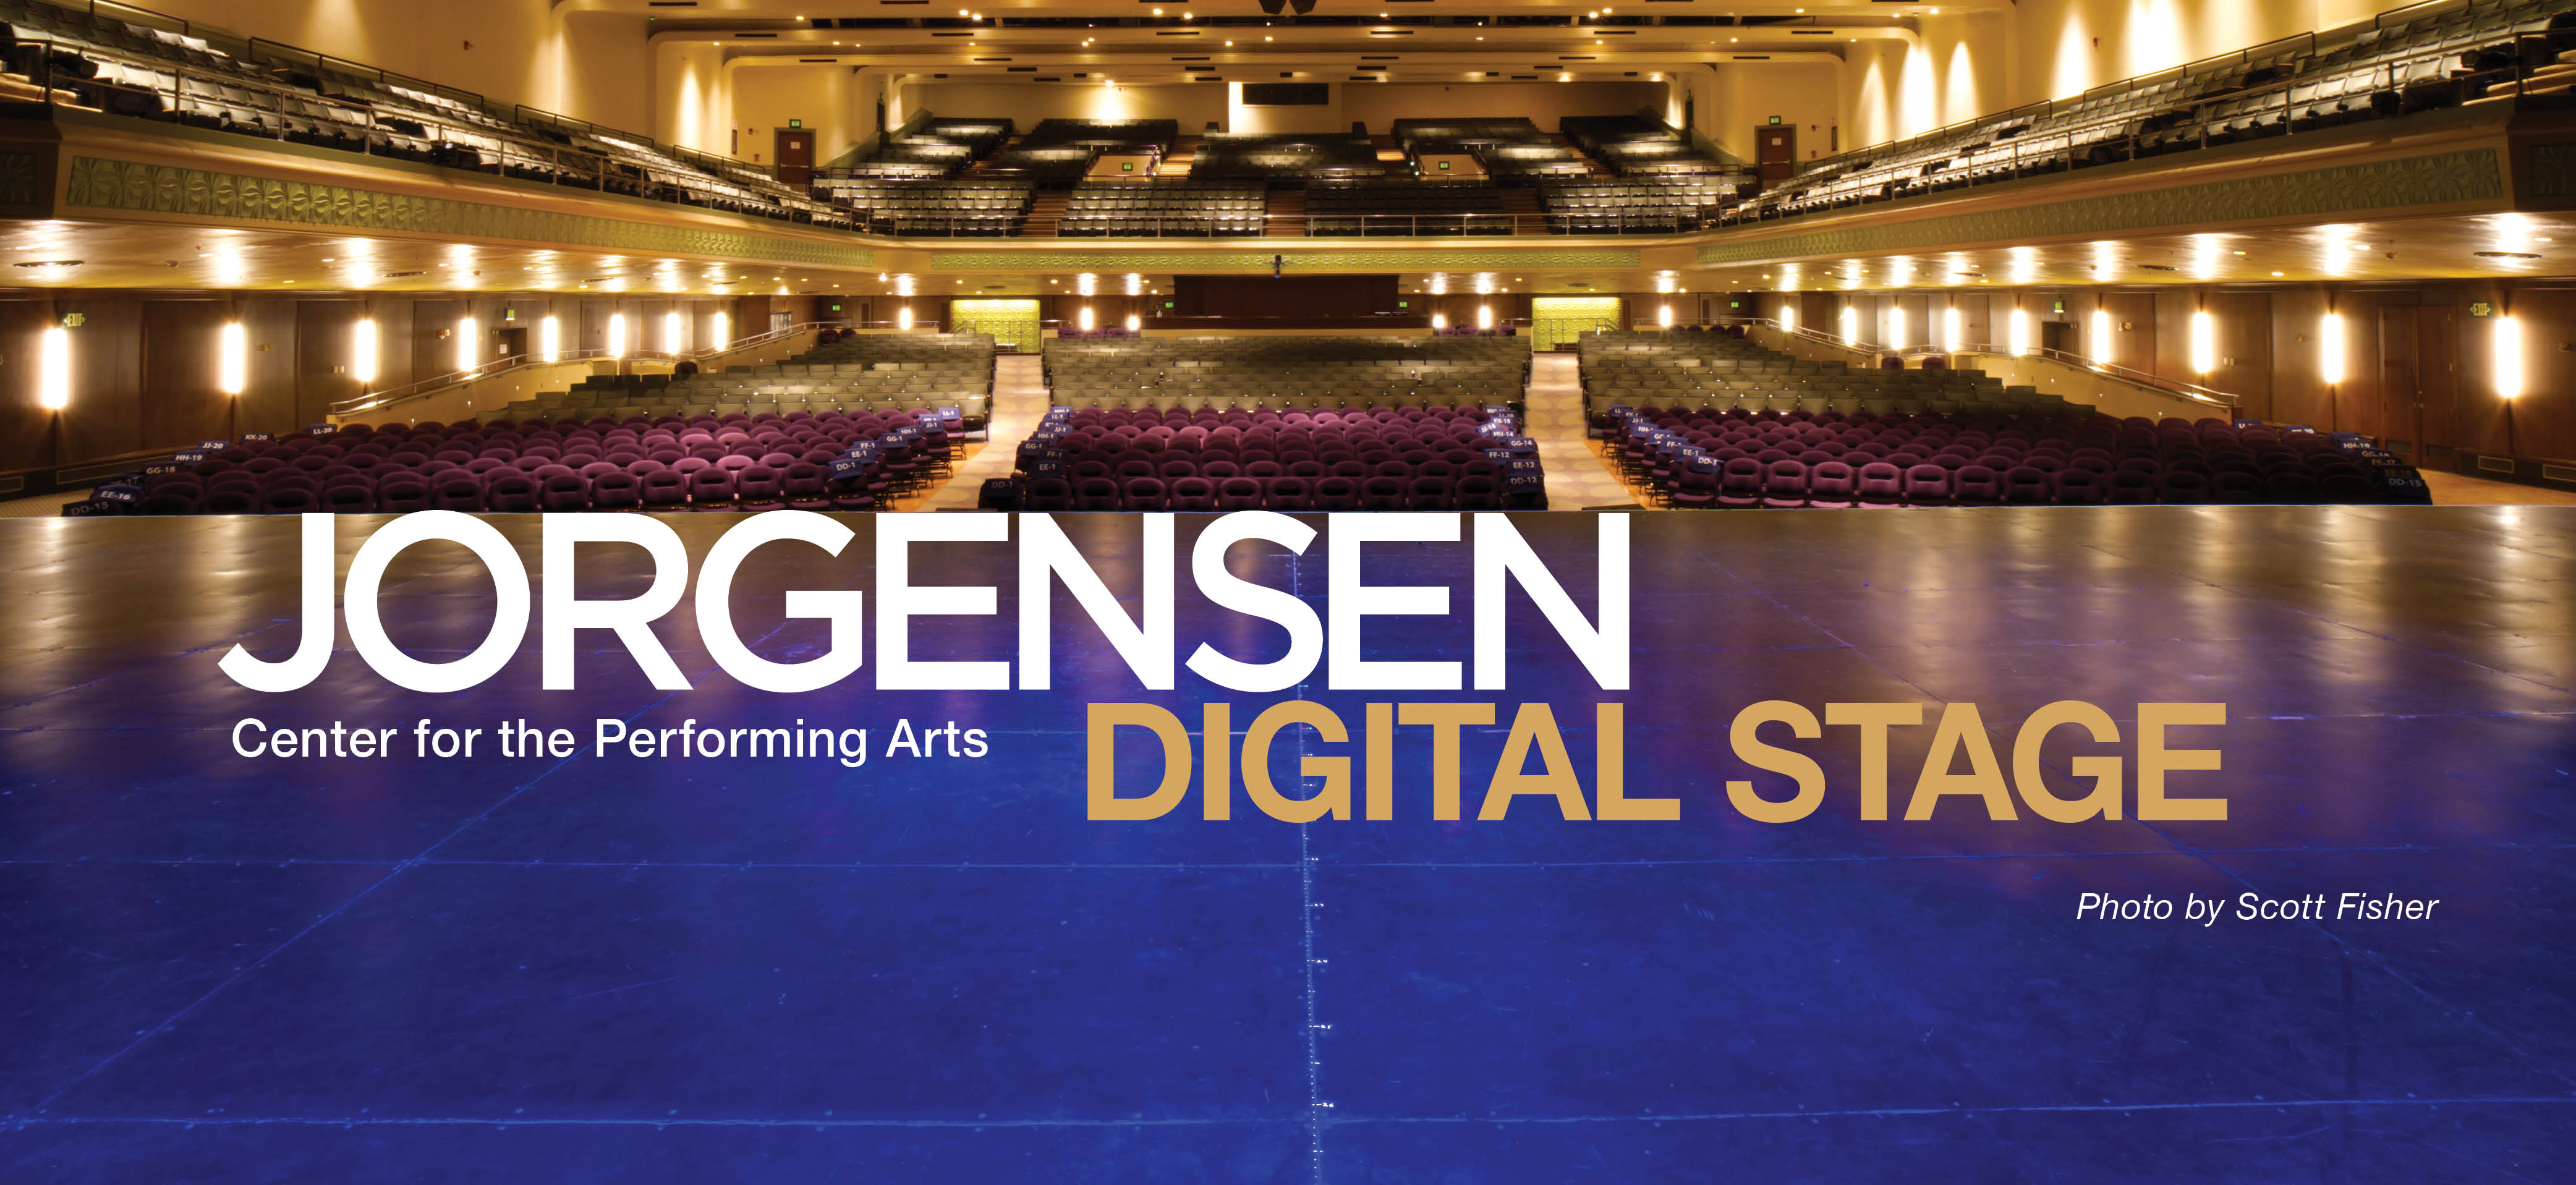 Jorgensen Digital Stage logo